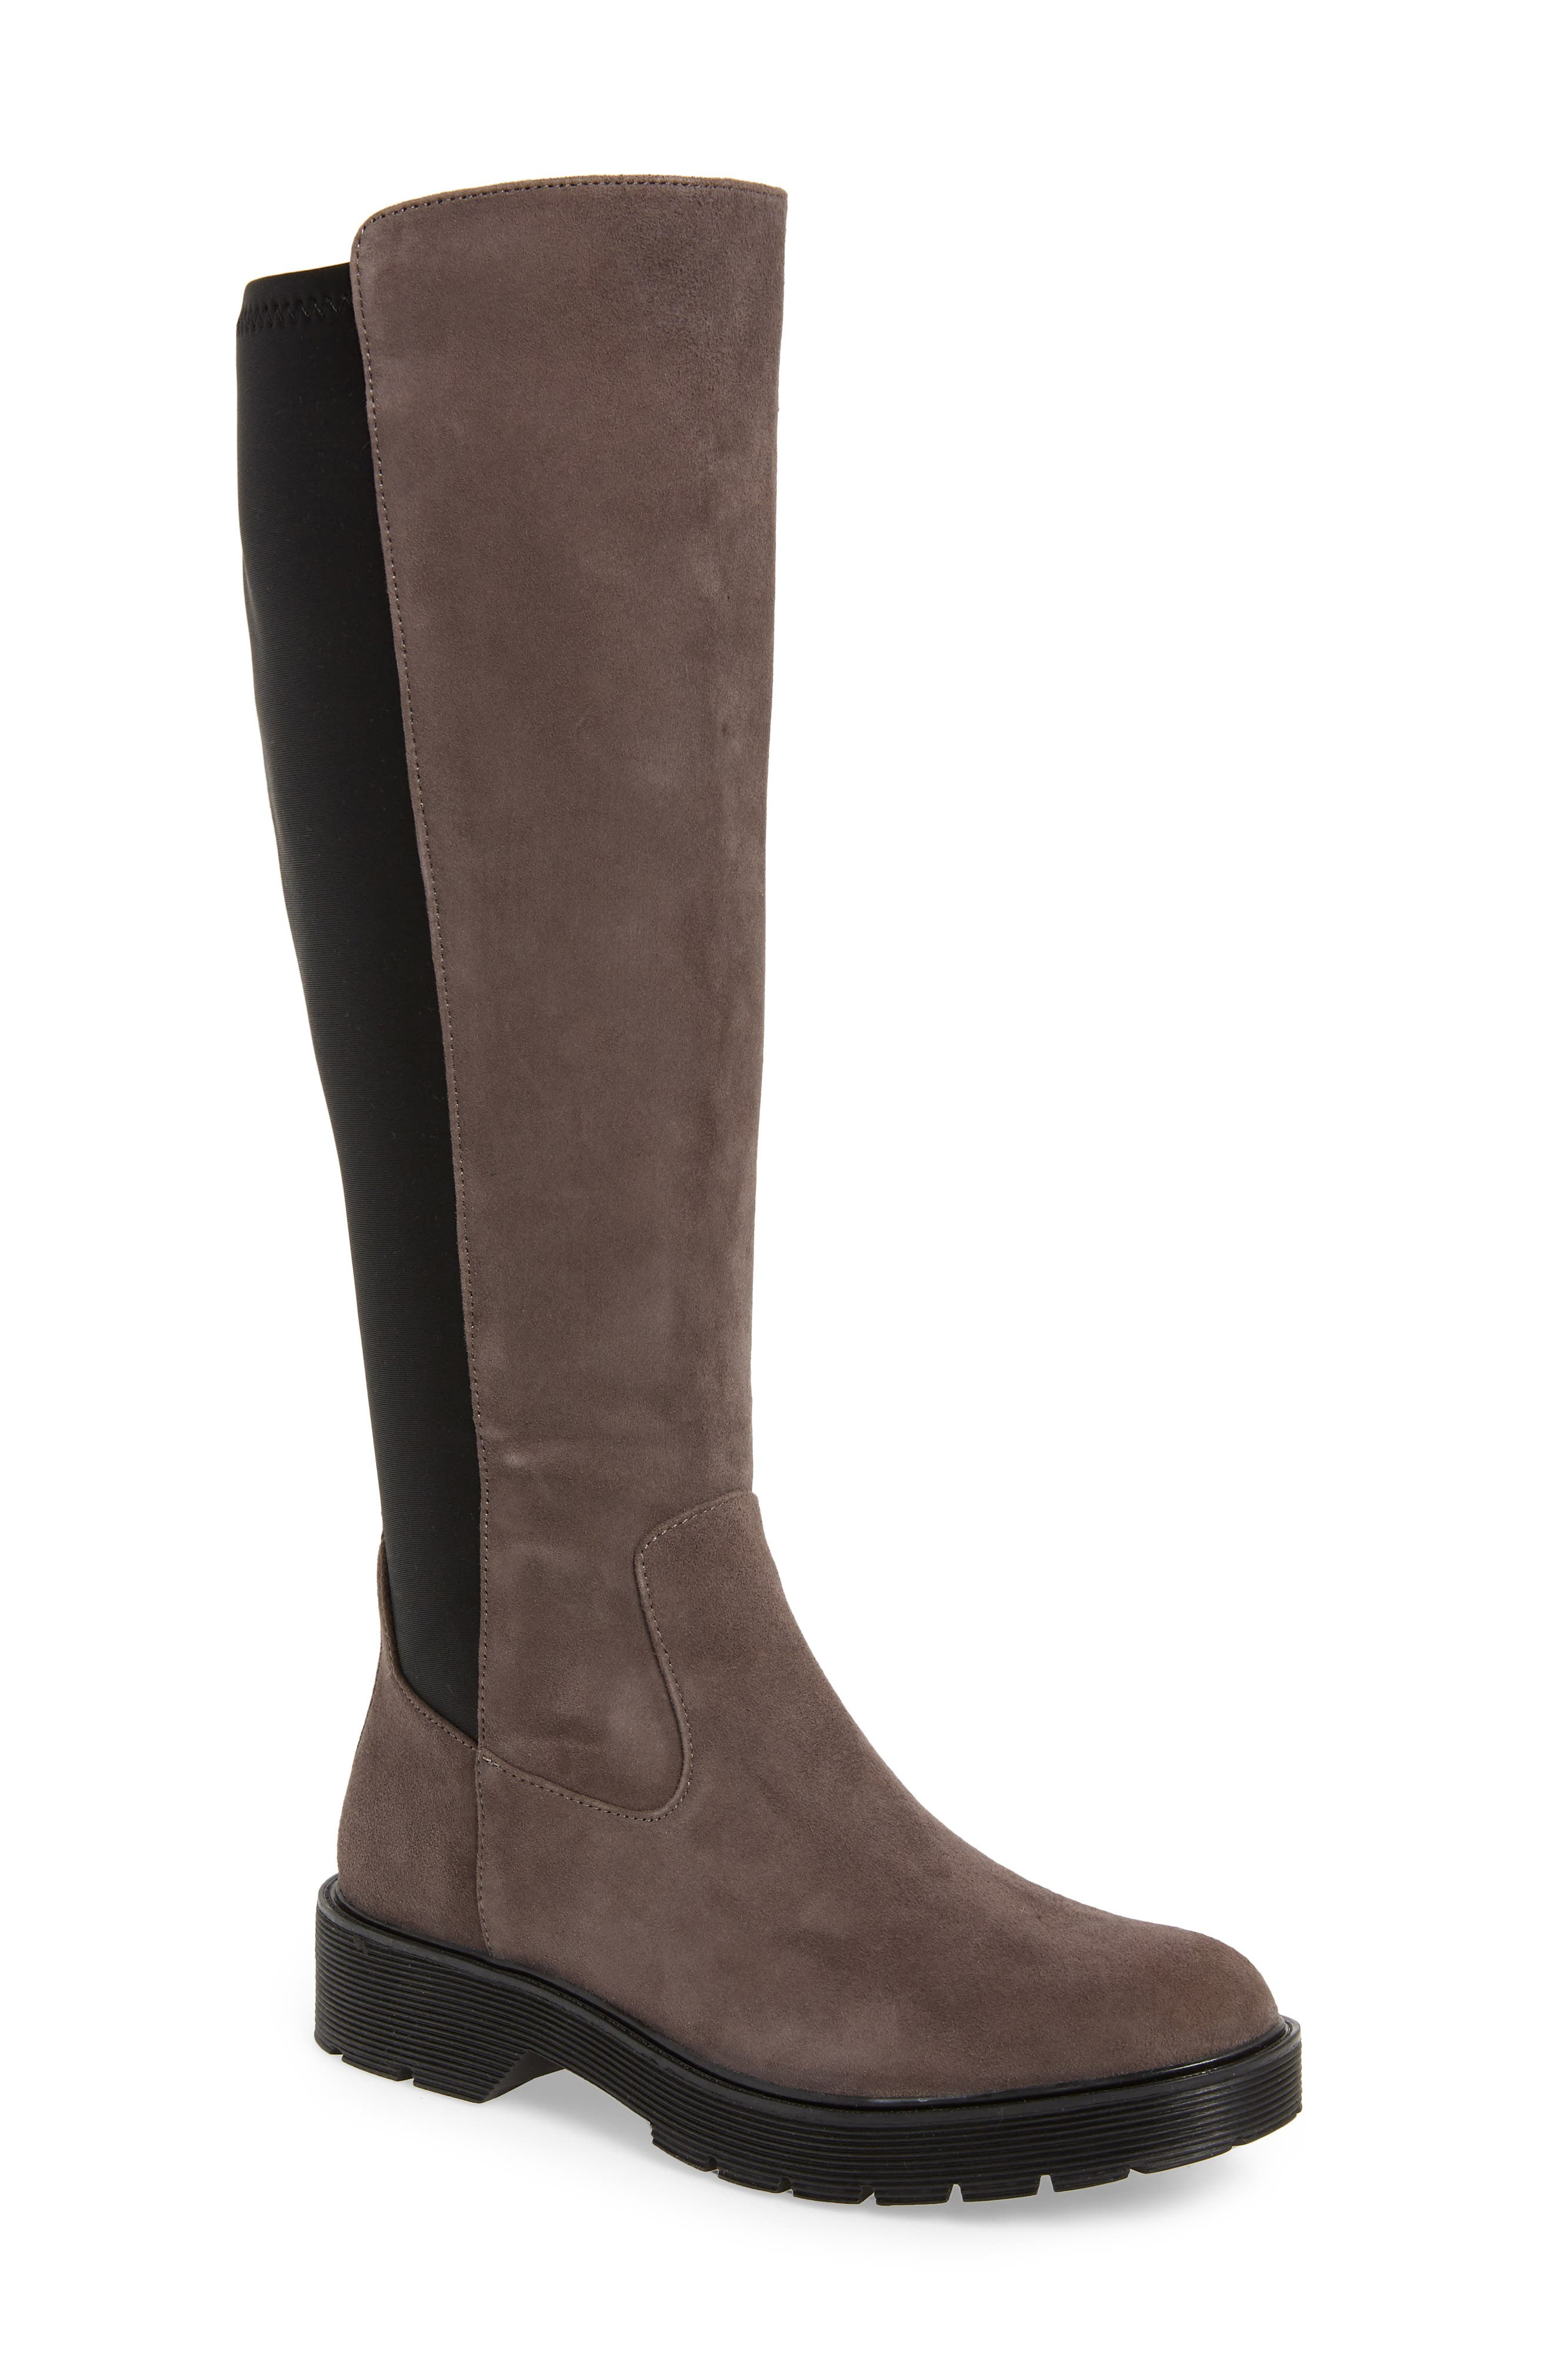 Themis Knee High Riding Boot,                             Main thumbnail 1, color,                             DARK UTILITY/ BLACK SUEDE